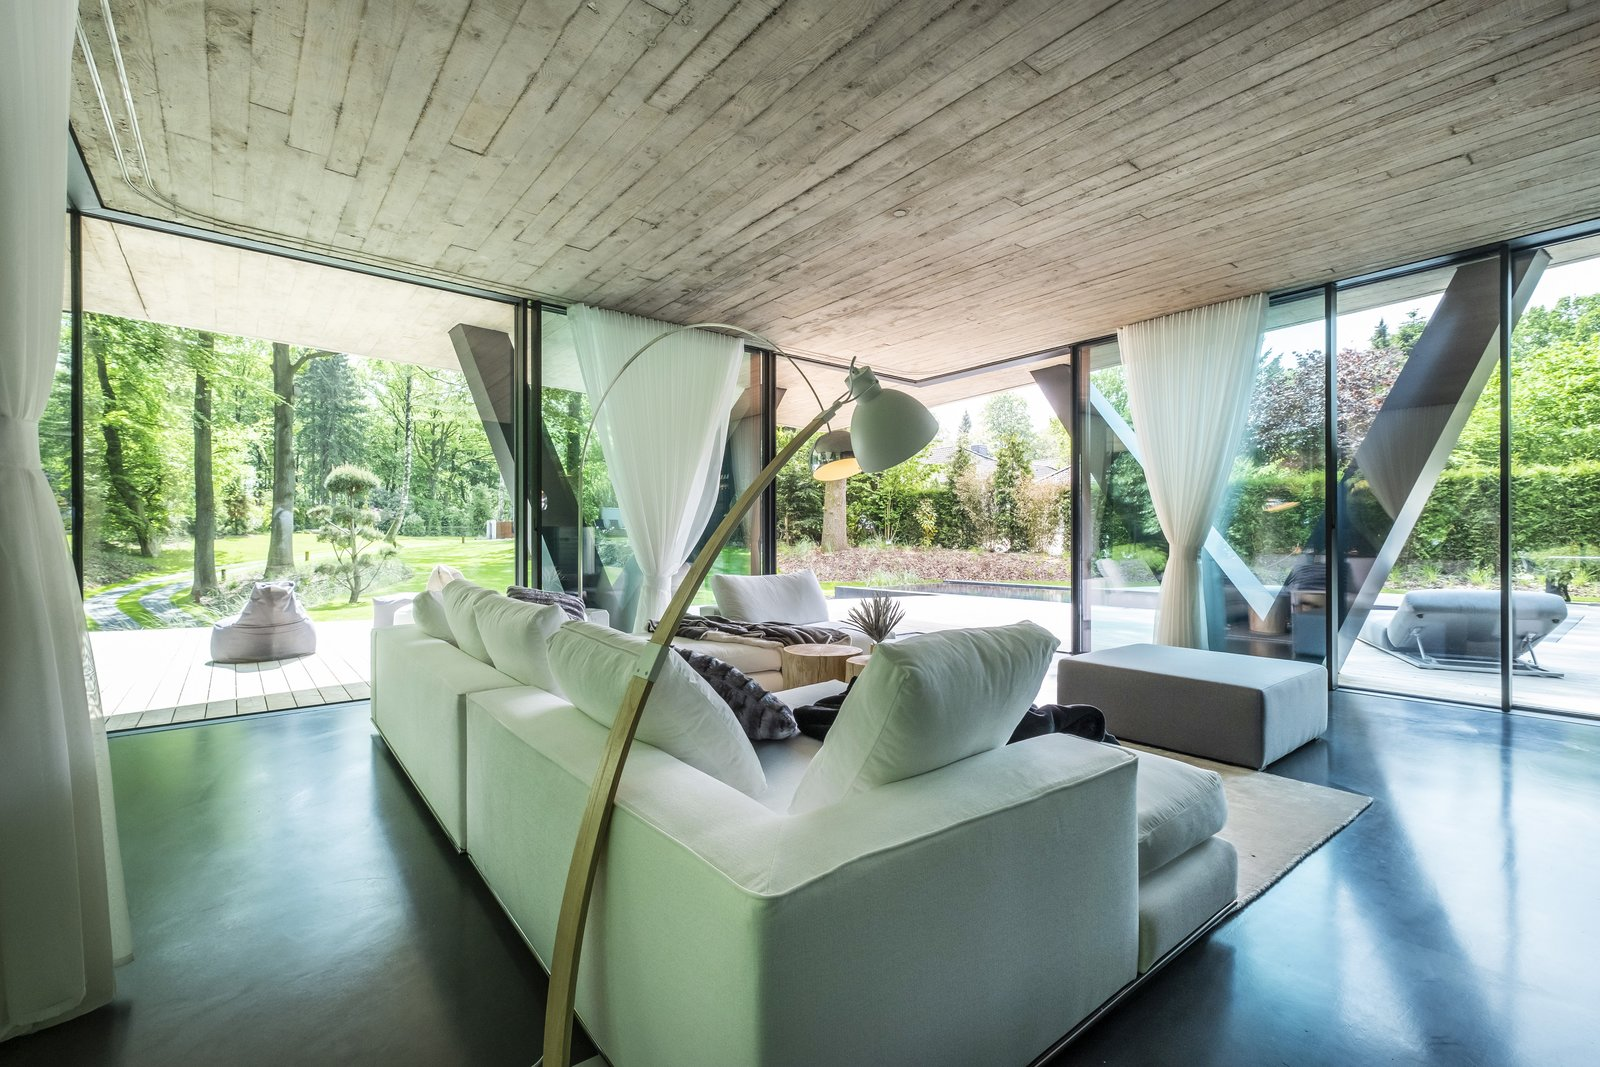 Living Room, Sectional, End Tables, Ottomans, Chair, Floor Lighting, and Concrete Floor  A Sculptural Abode in Germany Asks $3.59M